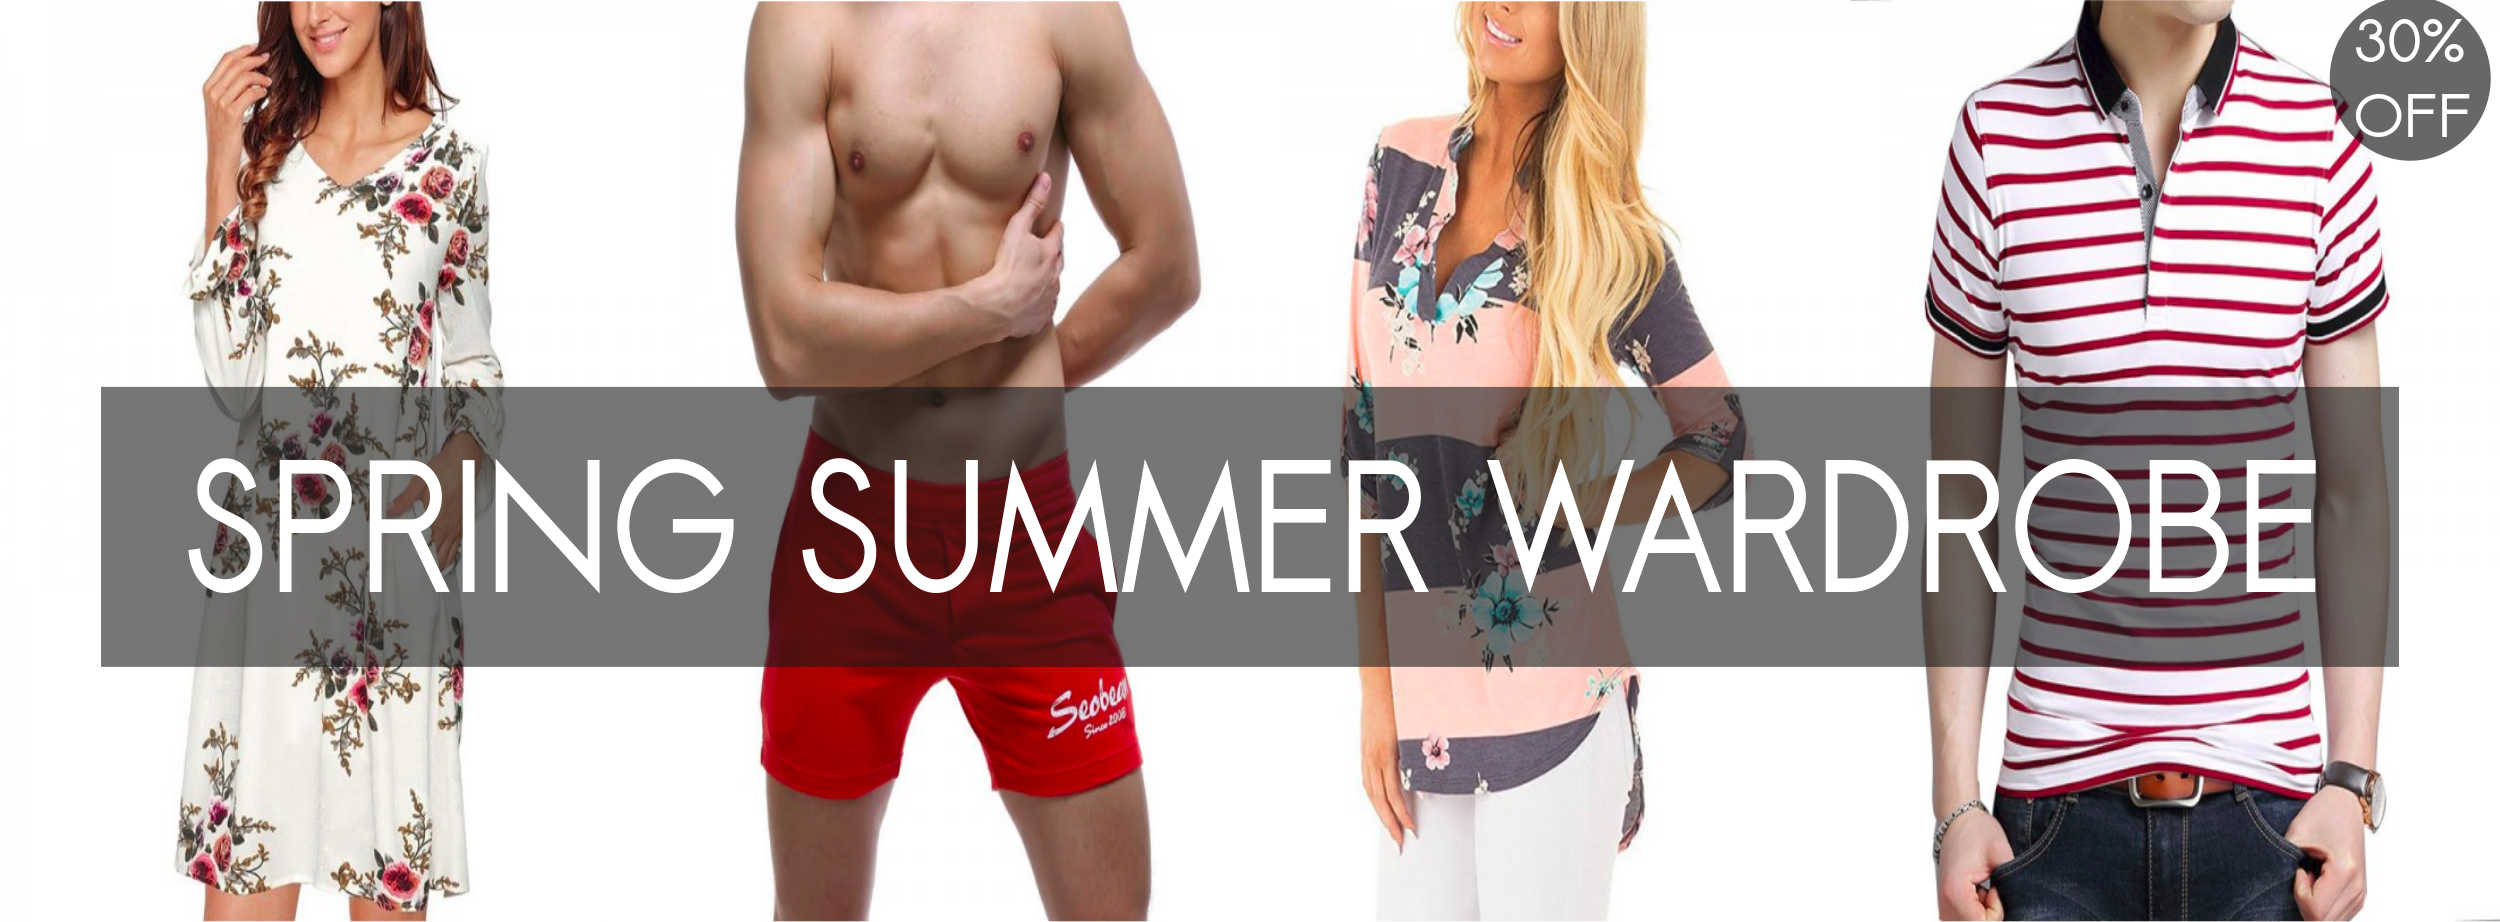 Summer Outfits Tops Tees Swimsuits Spring Dresses For Men And Women Sale